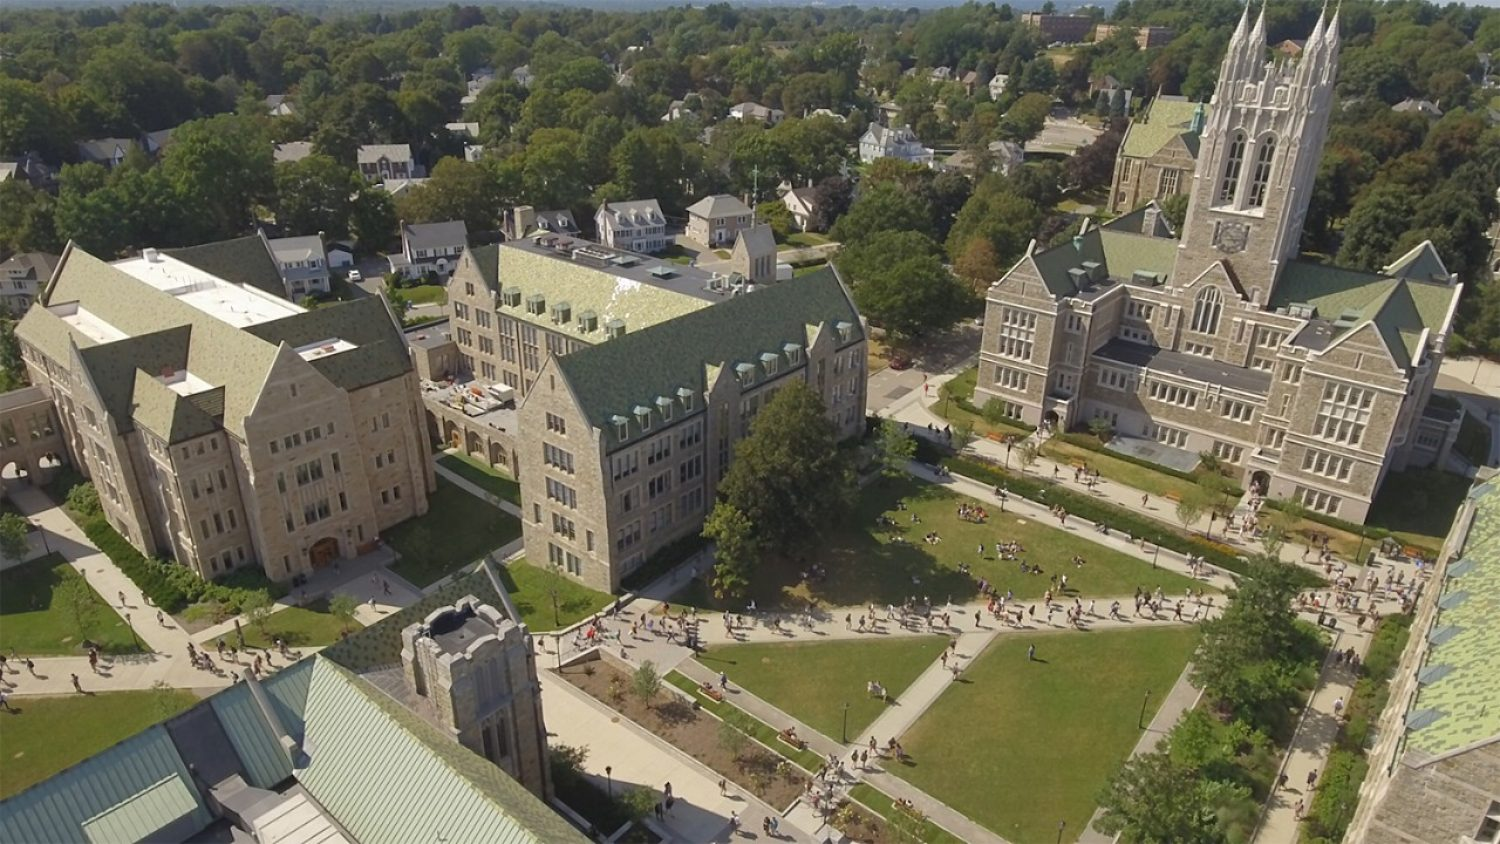 Aerial photo of Gasson Hall and city of Boston